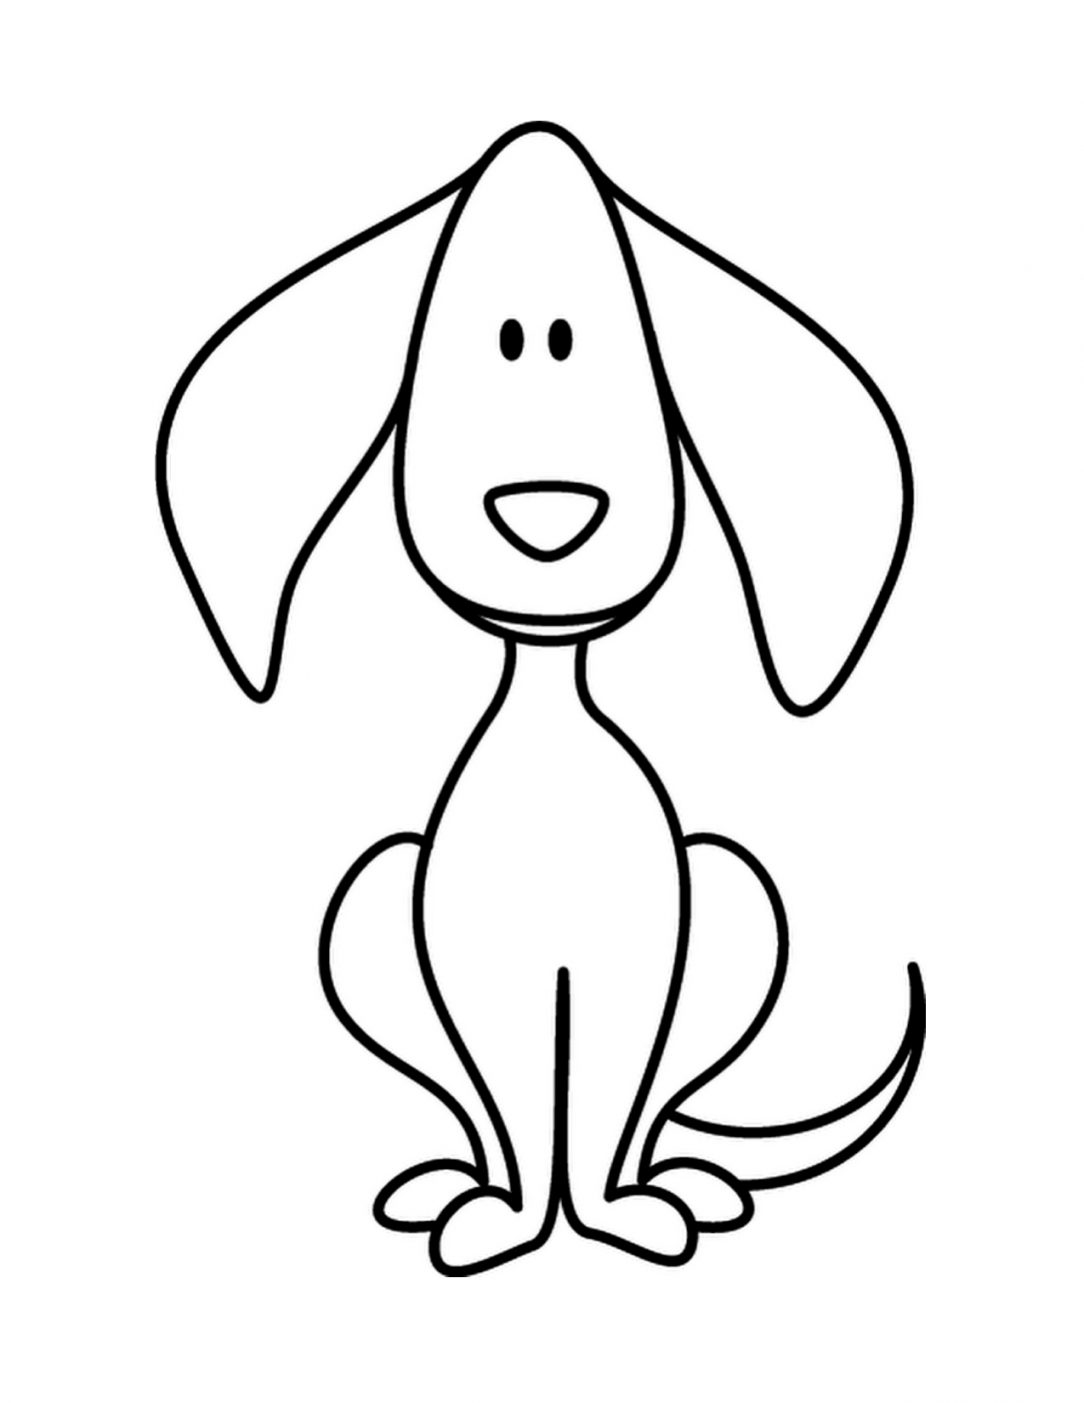 1084x1403 Drawings Of Dogs Easy Draw Dog Step